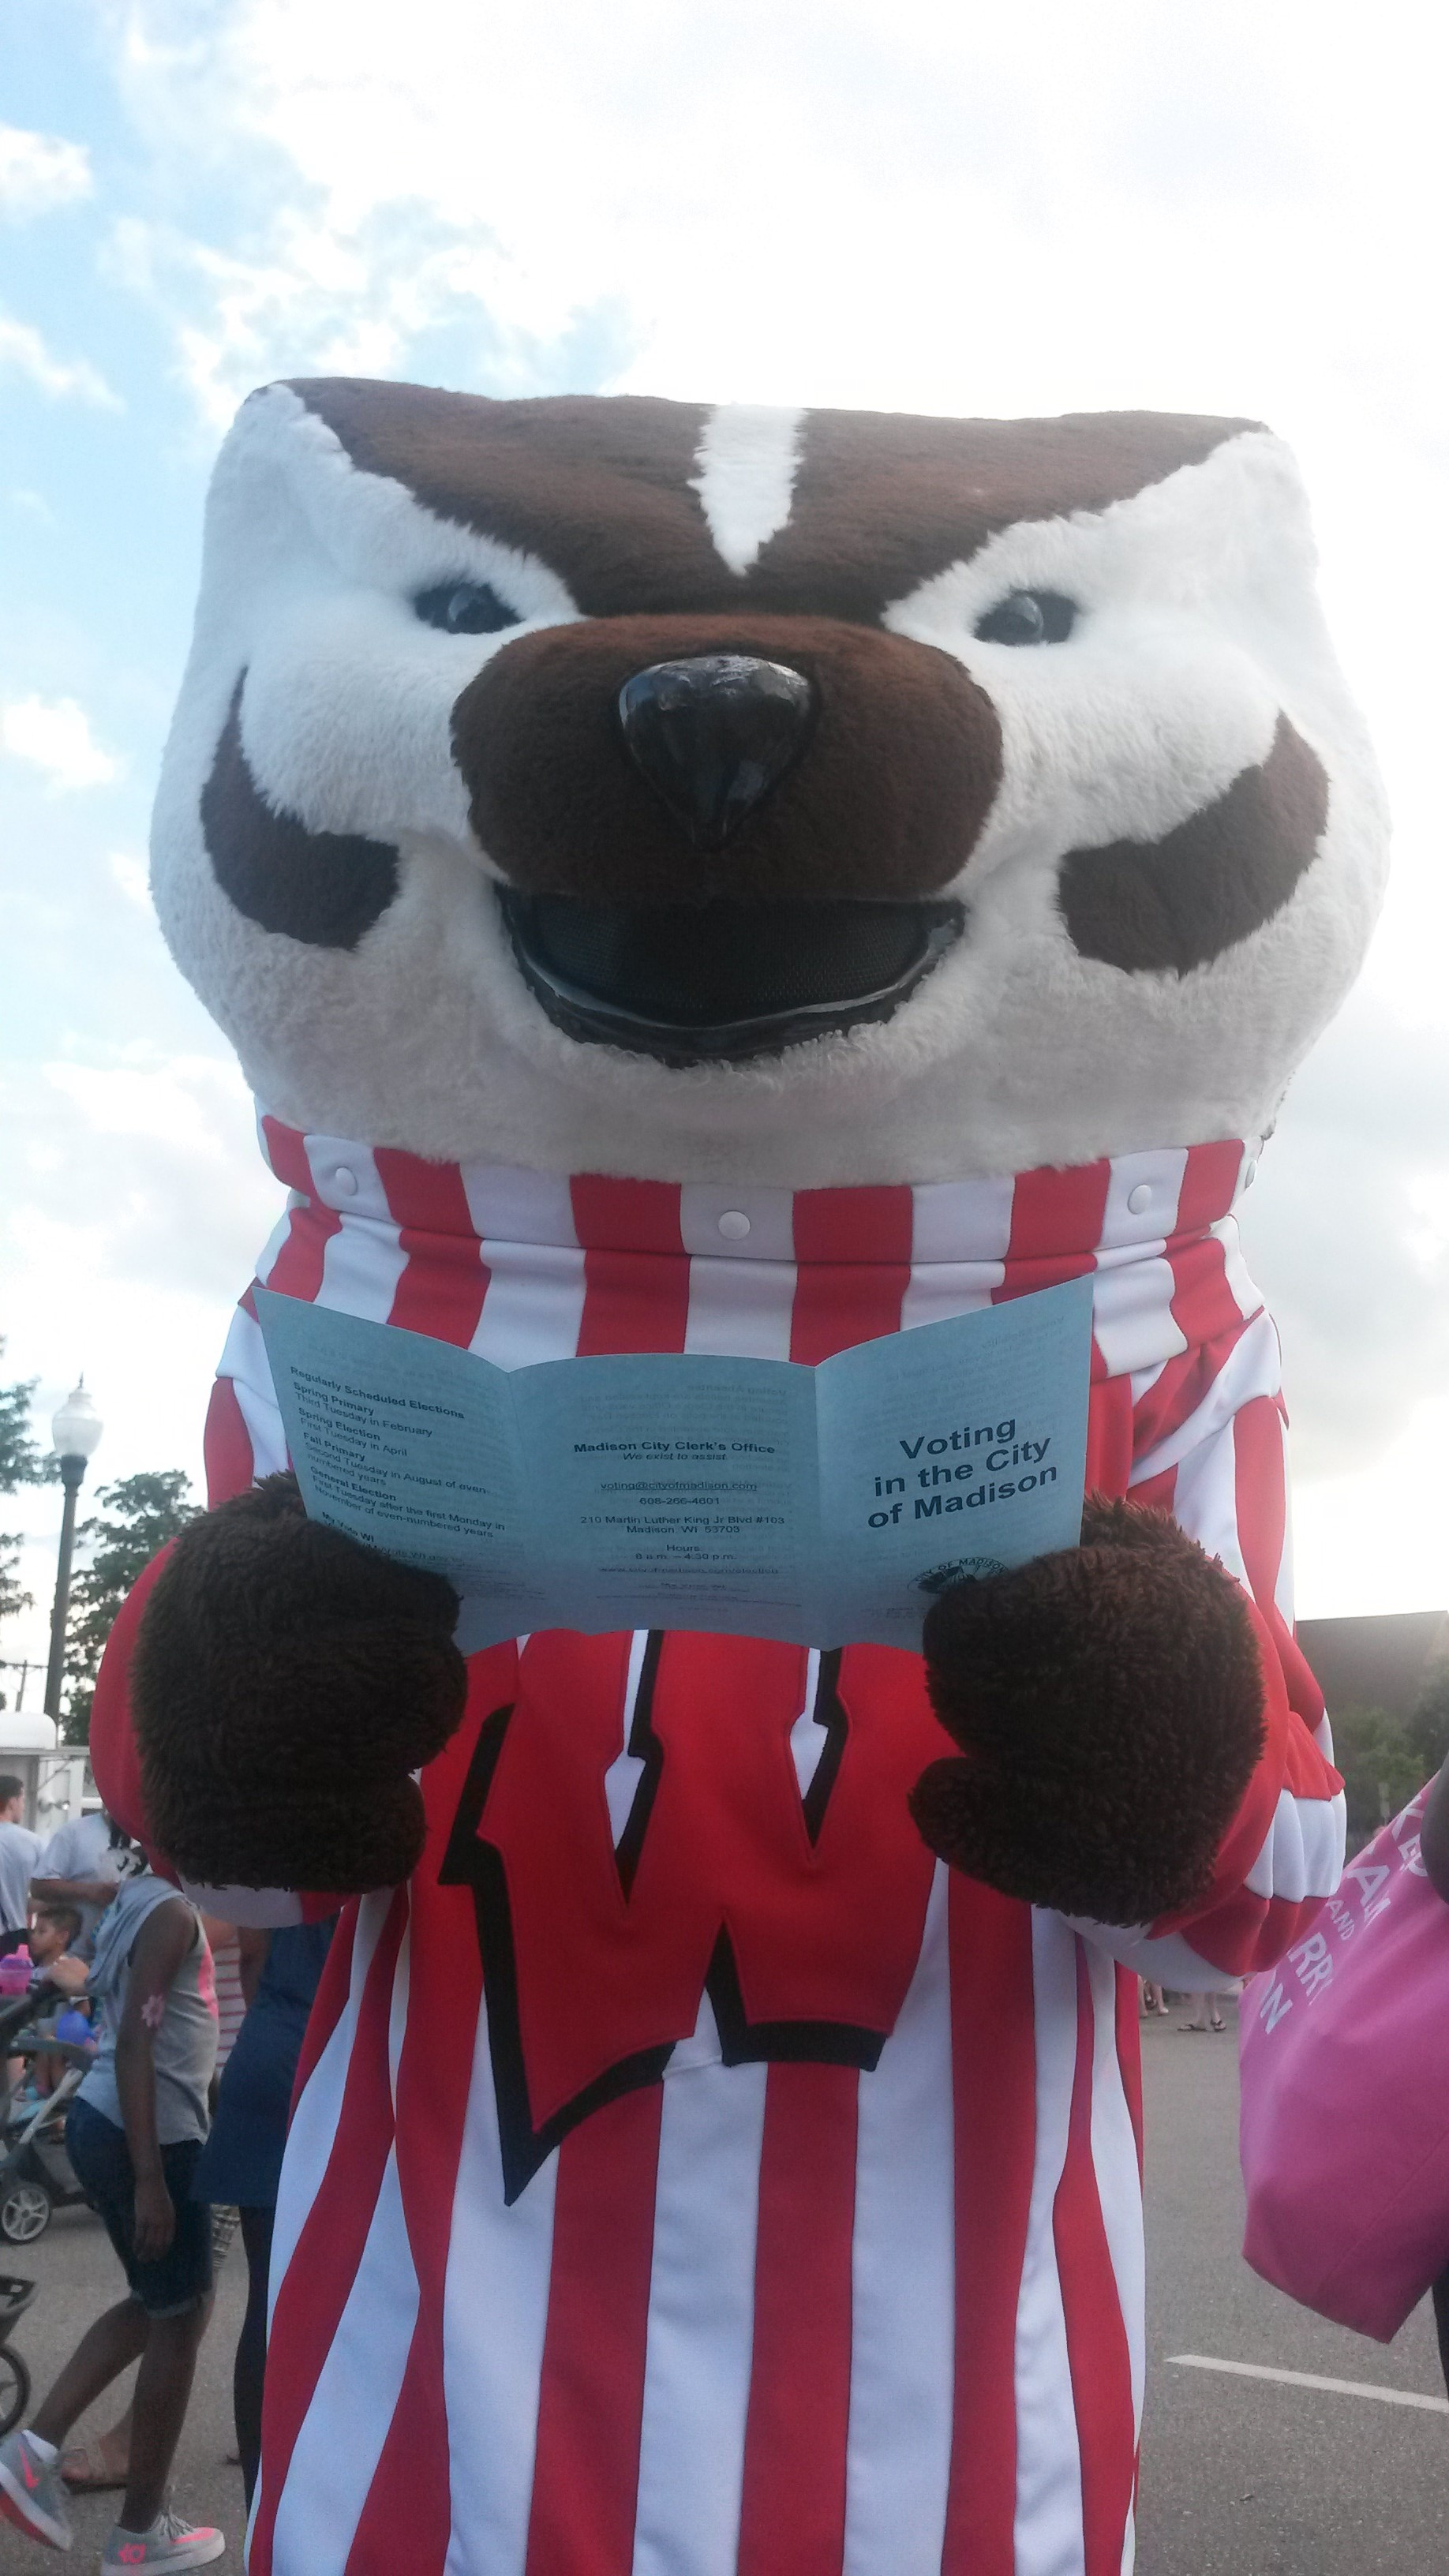 Bucky Badger mascot holding a brochure titled Voting in the City of Madison